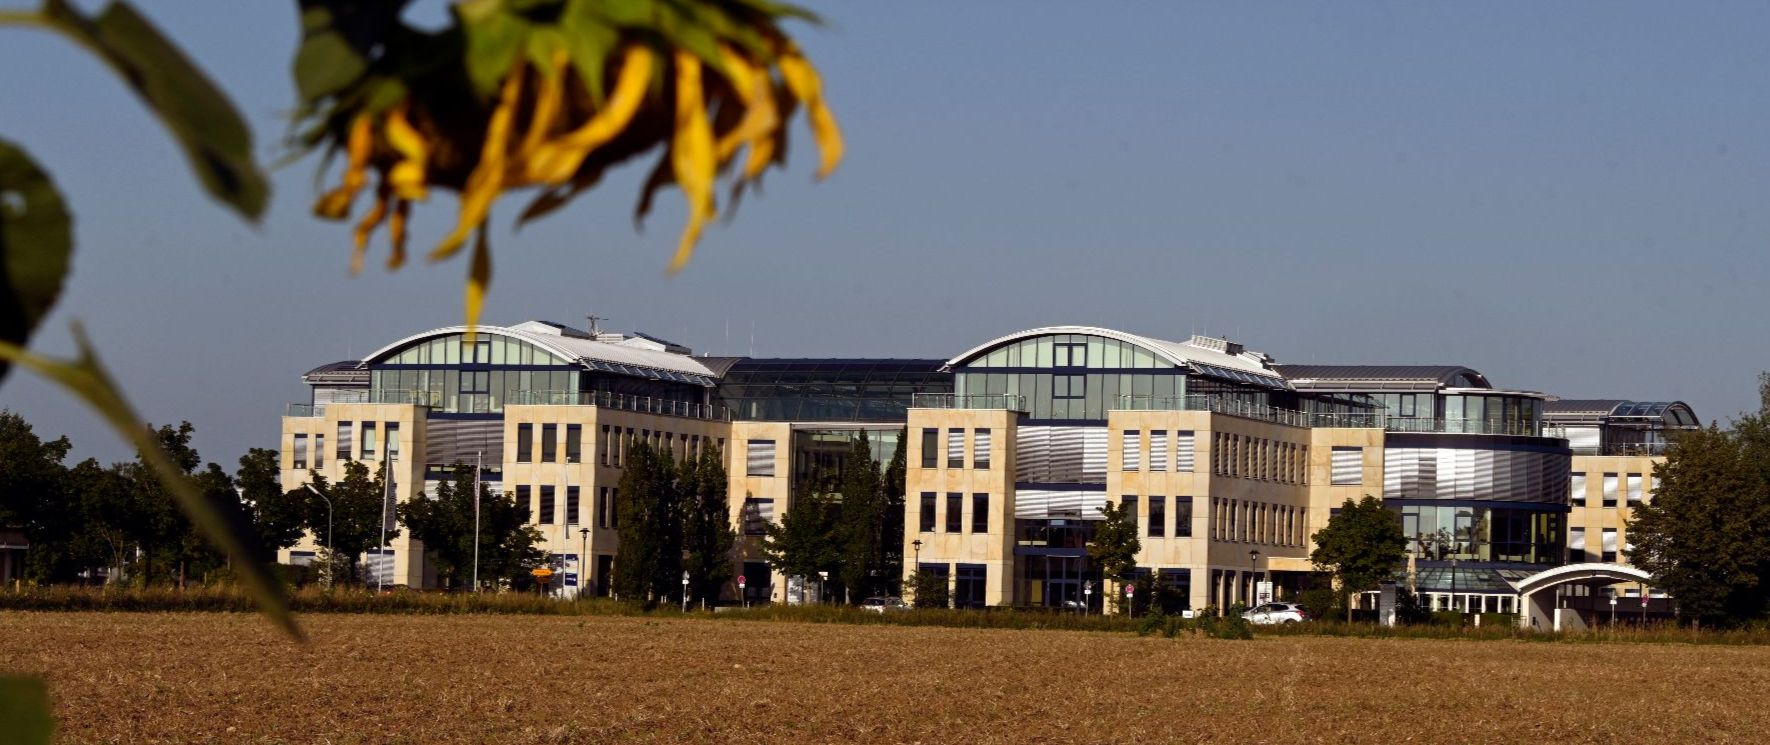 Arcone Technologie Center